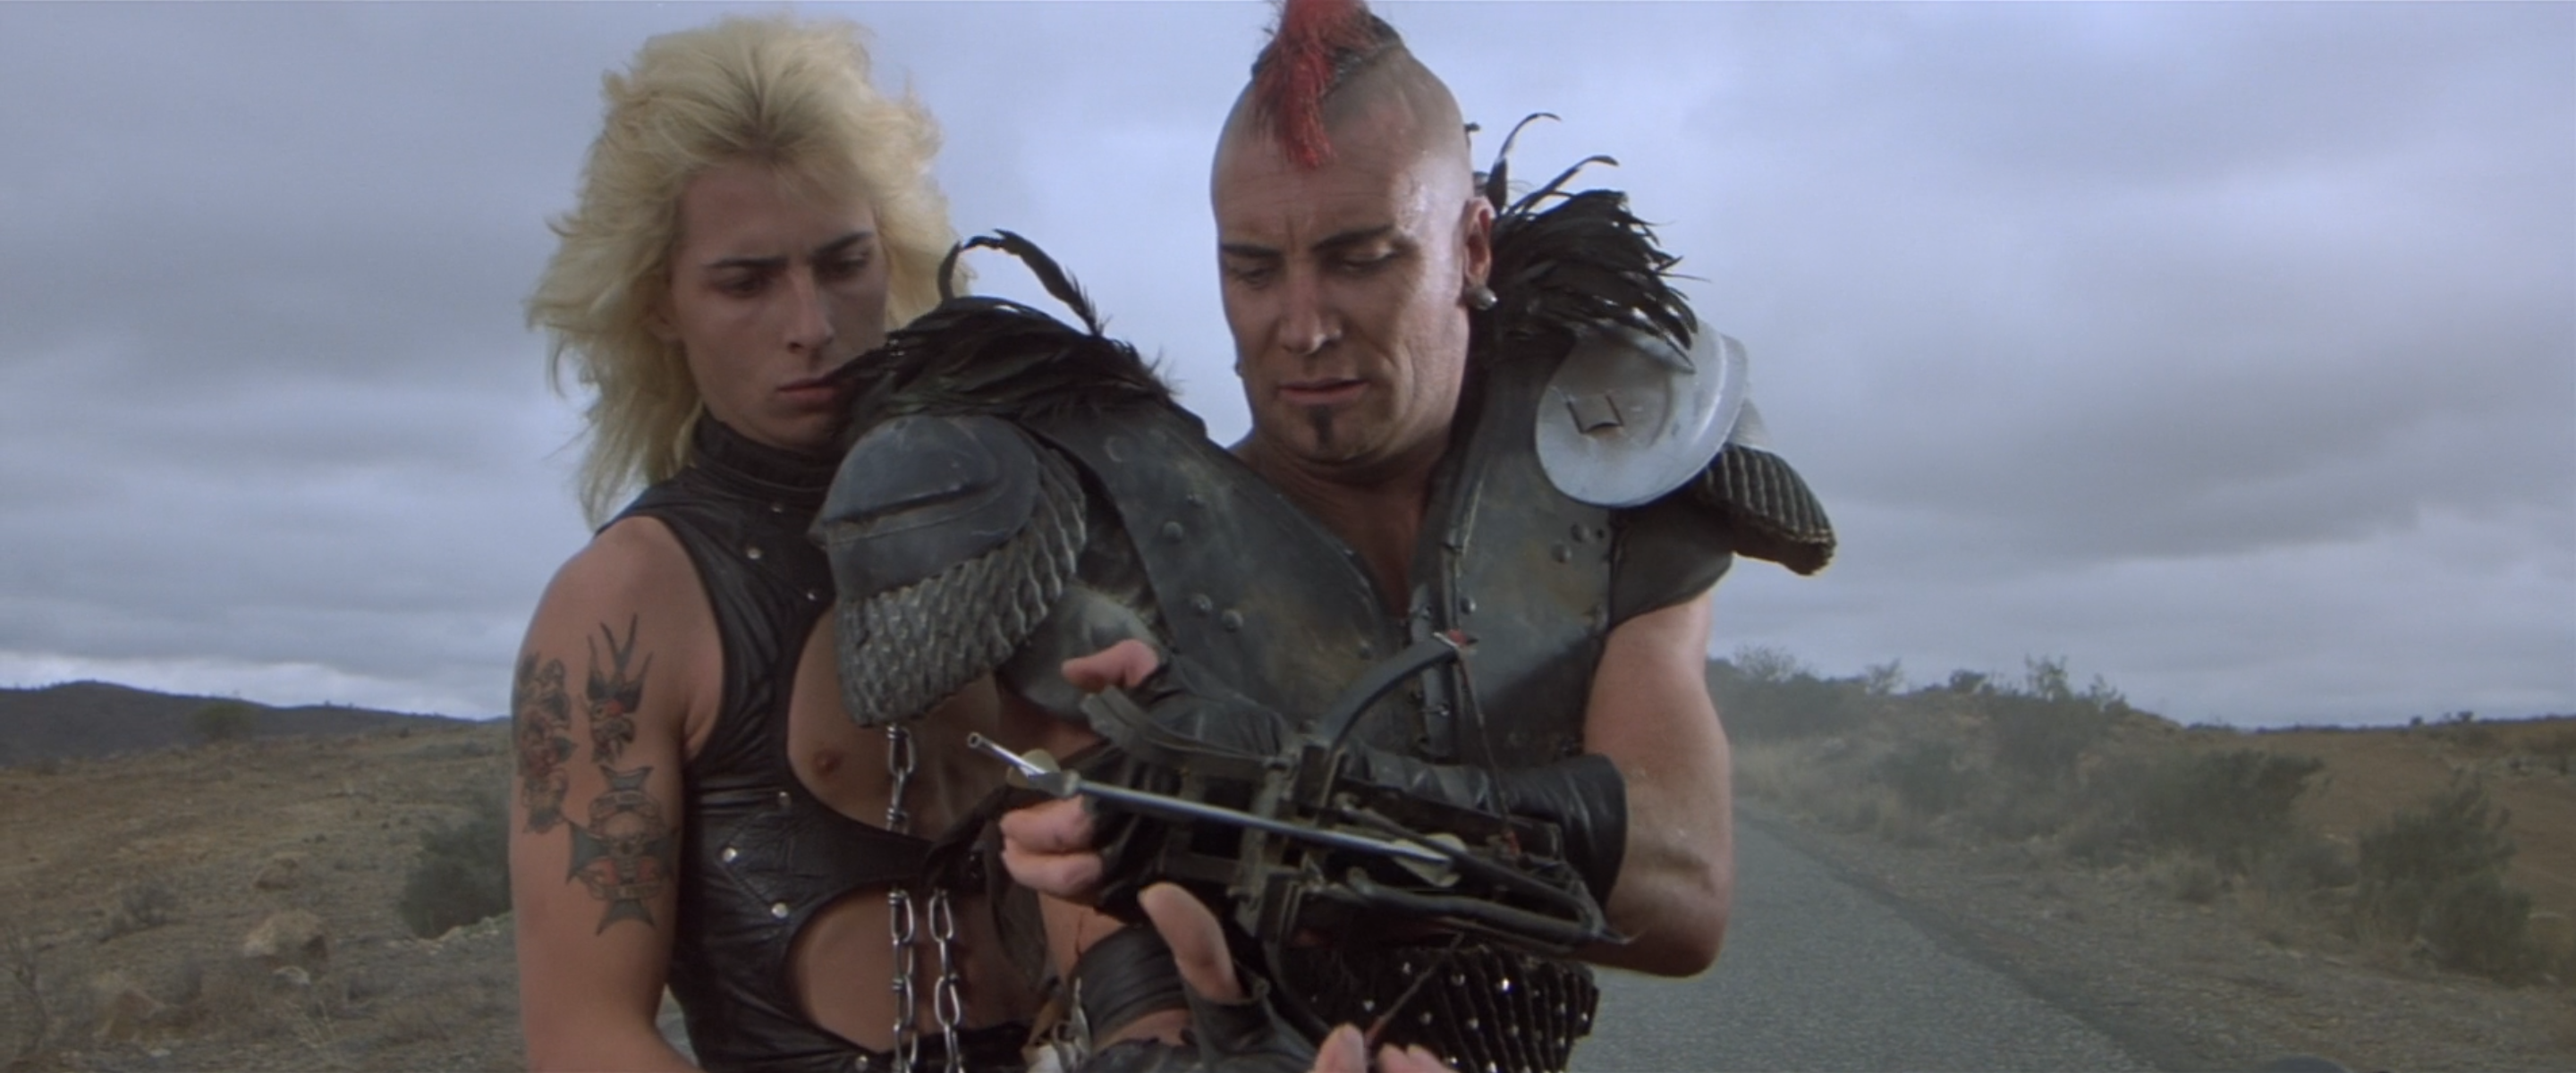 Vernon Wells in George Miller's Road Warrior, 1981